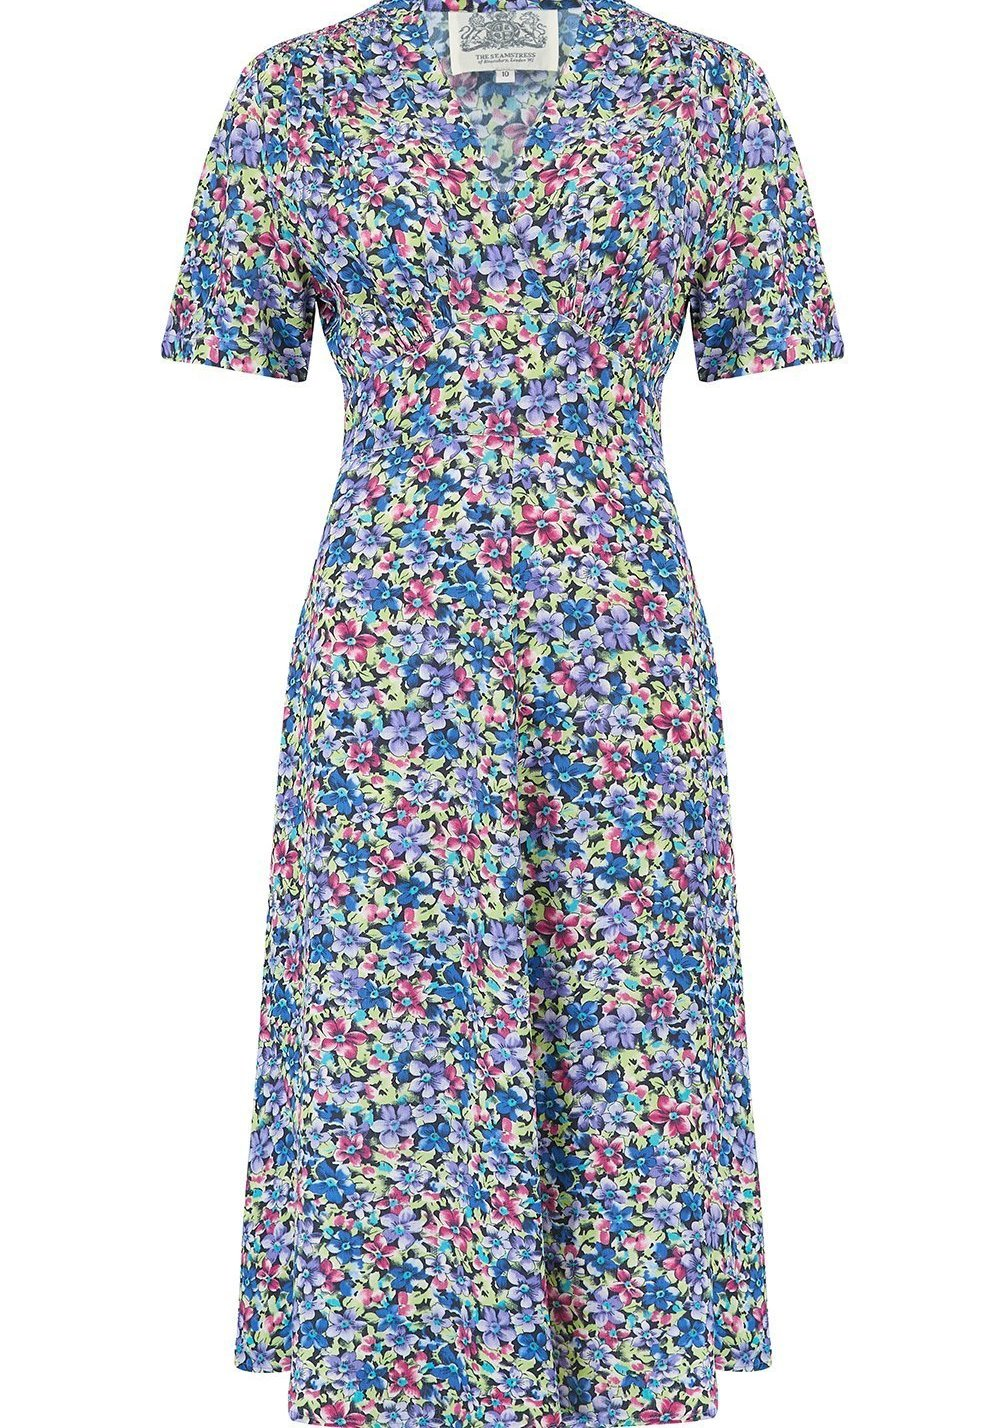 "The Seamstress Of Bloomsbury ""Dolores"" Swing Dress in Pansy Print, A Classic 1940s Inspired Vintage Style - RocknRomance Clothing"